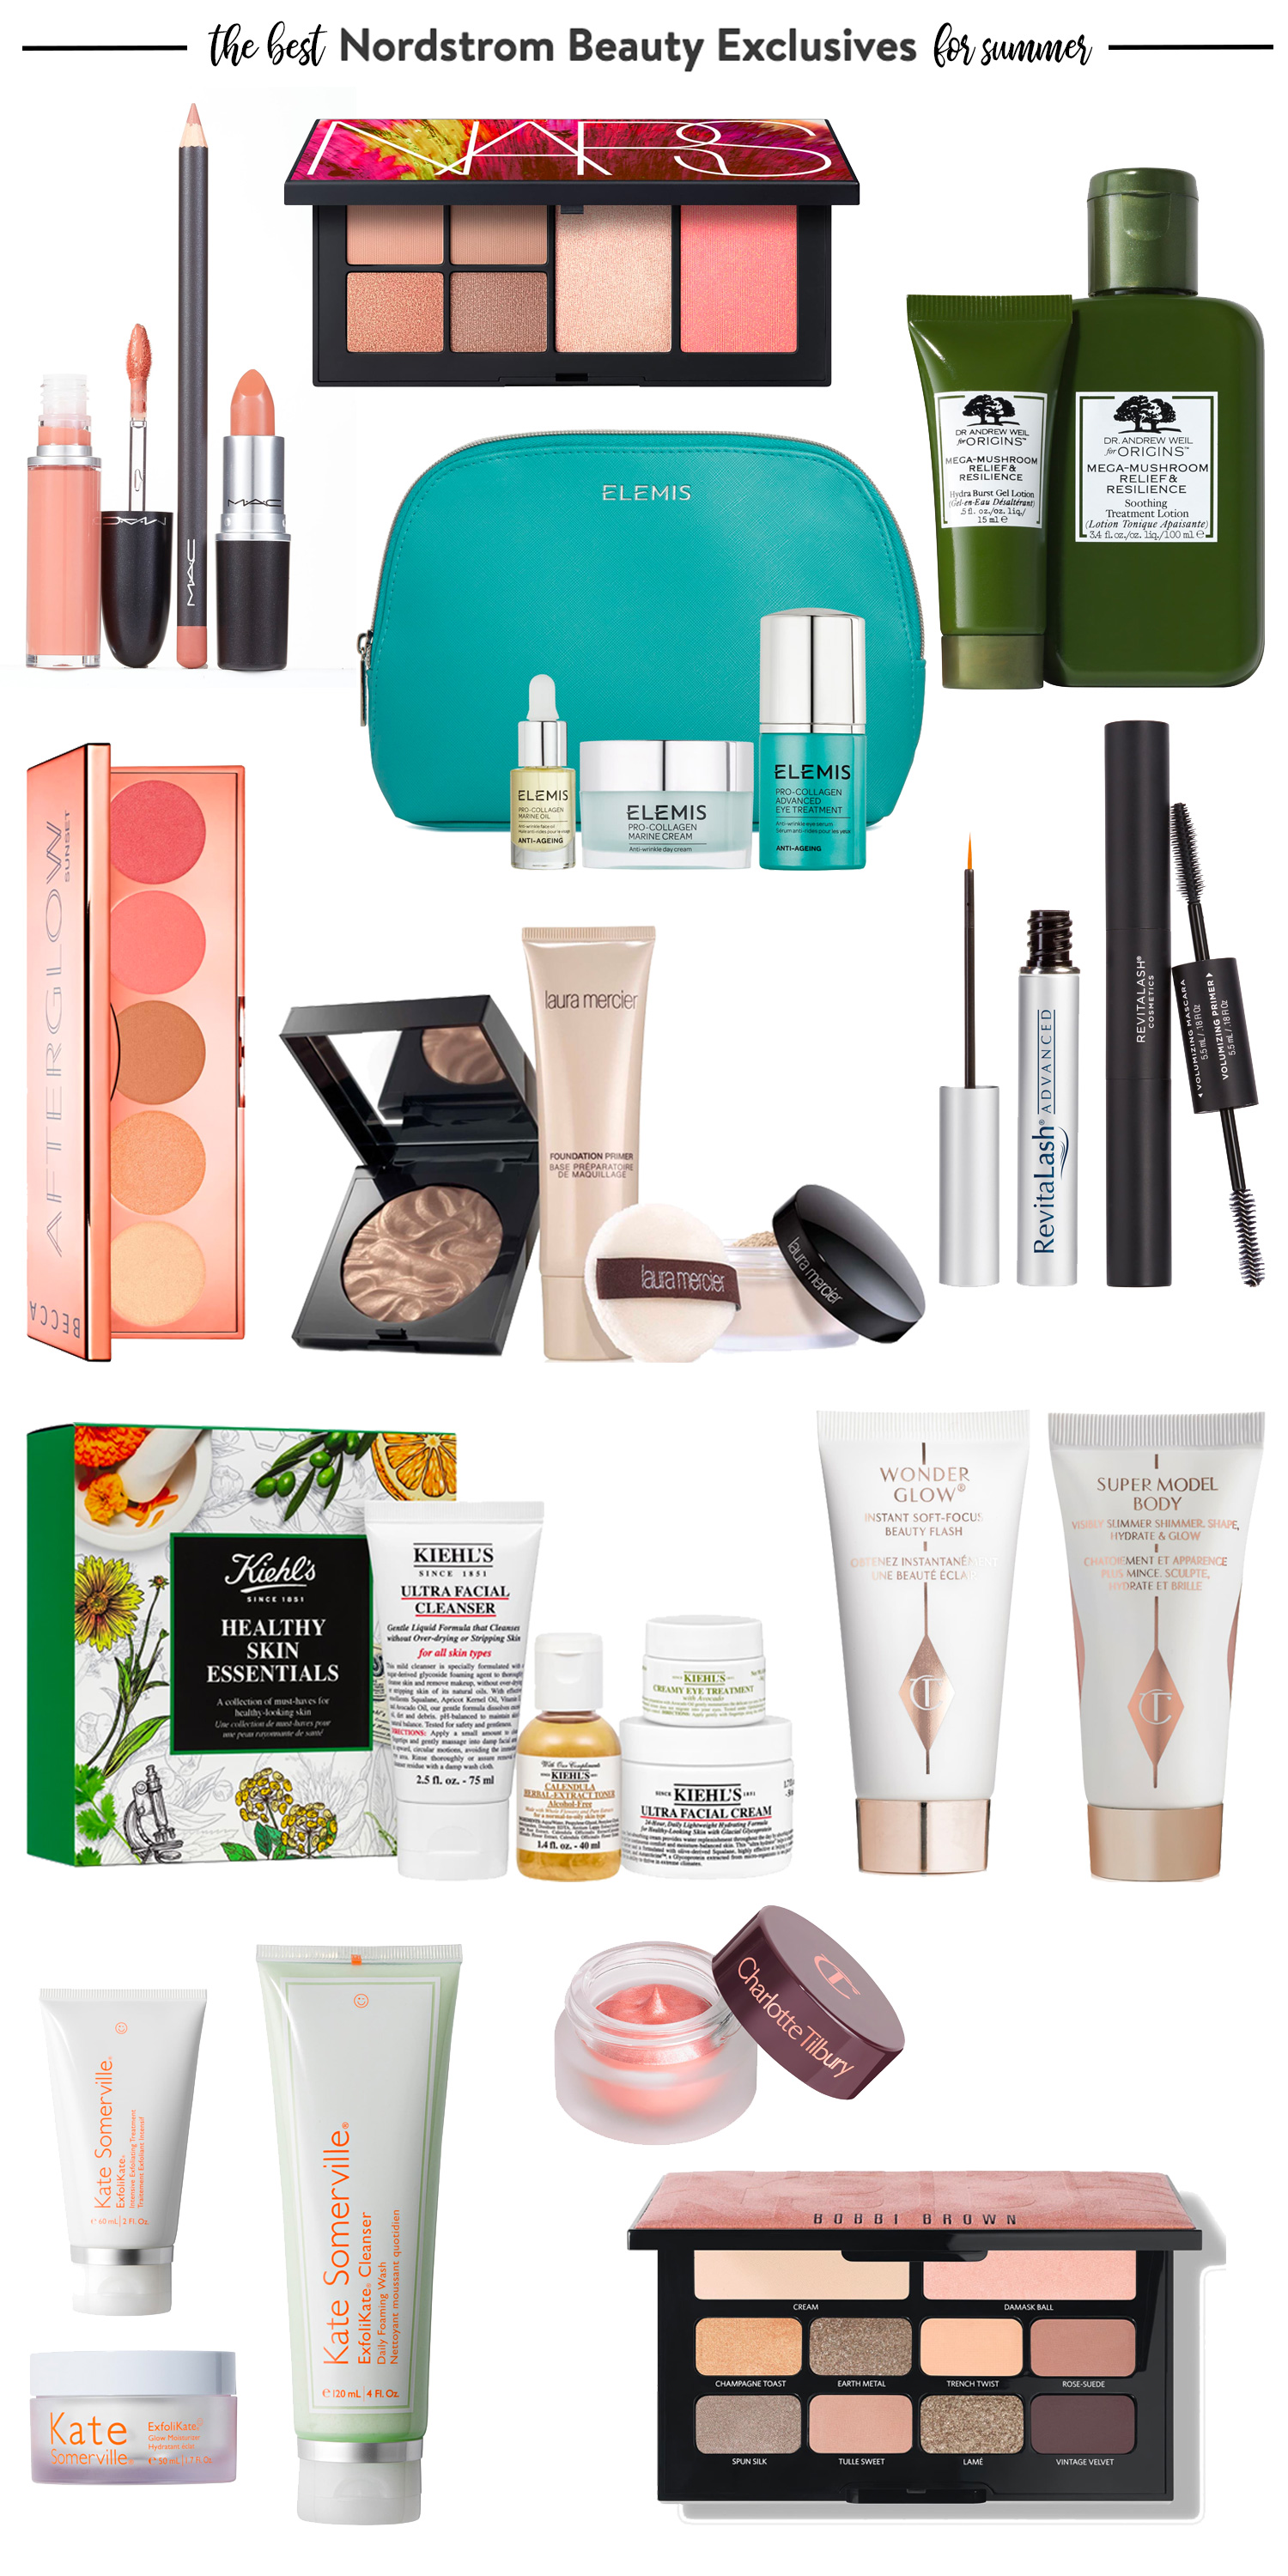 Nordstrom Beauty Exclusives for Summer 2019